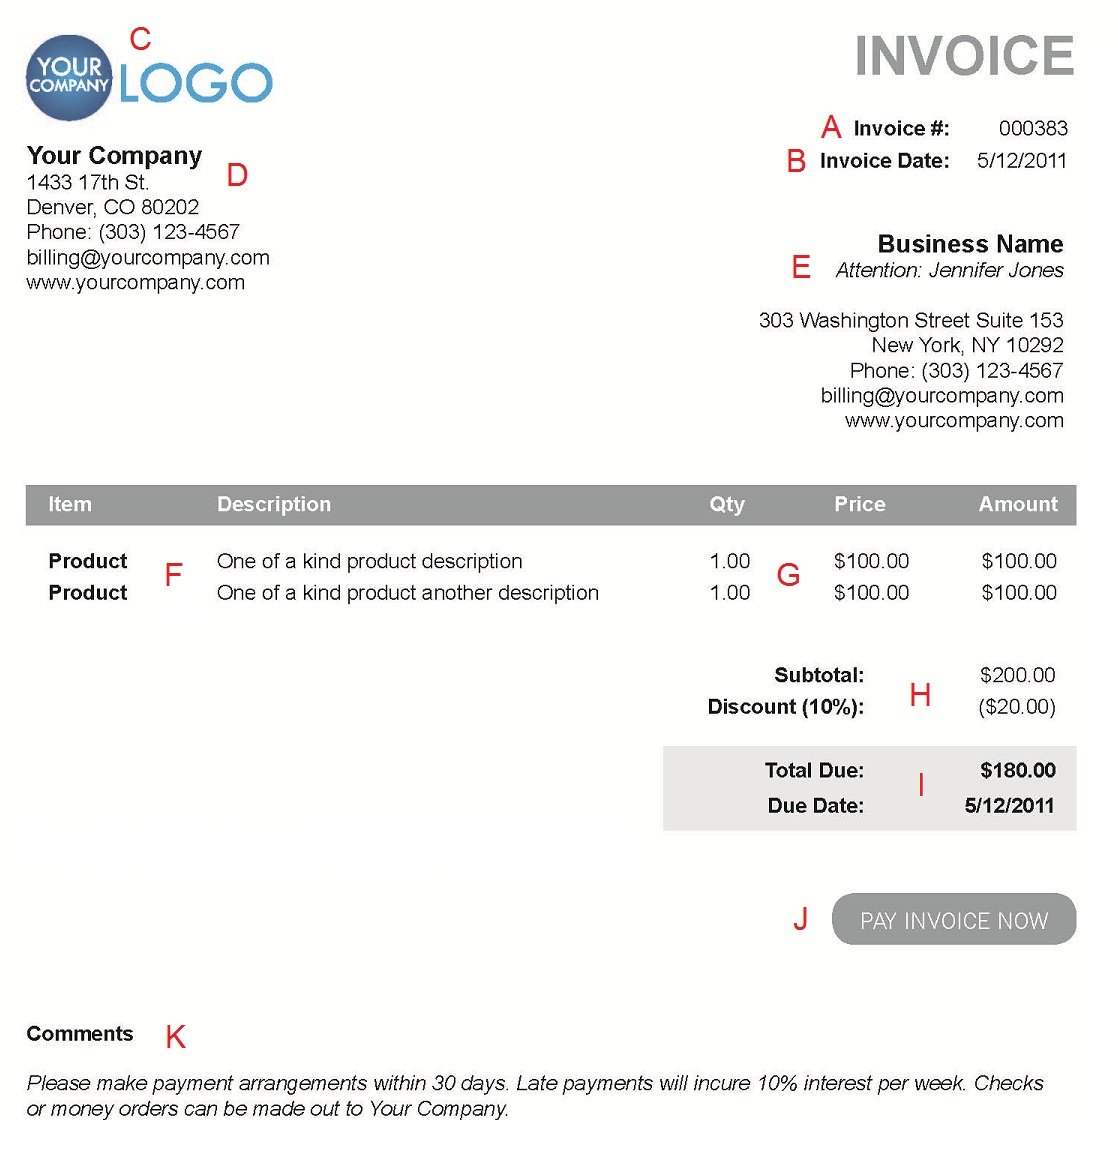 Ultrablogus  Pleasant The  Different Sections Of An Electronic Payment Invoice With Engaging A  With Cute Invoice Pay Also Invoice Log In Addition Basic Invoice Template Free And Photographer Invoice Template As Well As Quick Books Invoice Additionally Us Customs Invoice From Paysimplecom With Ultrablogus  Engaging The  Different Sections Of An Electronic Payment Invoice With Cute A  And Pleasant Invoice Pay Also Invoice Log In Addition Basic Invoice Template Free From Paysimplecom